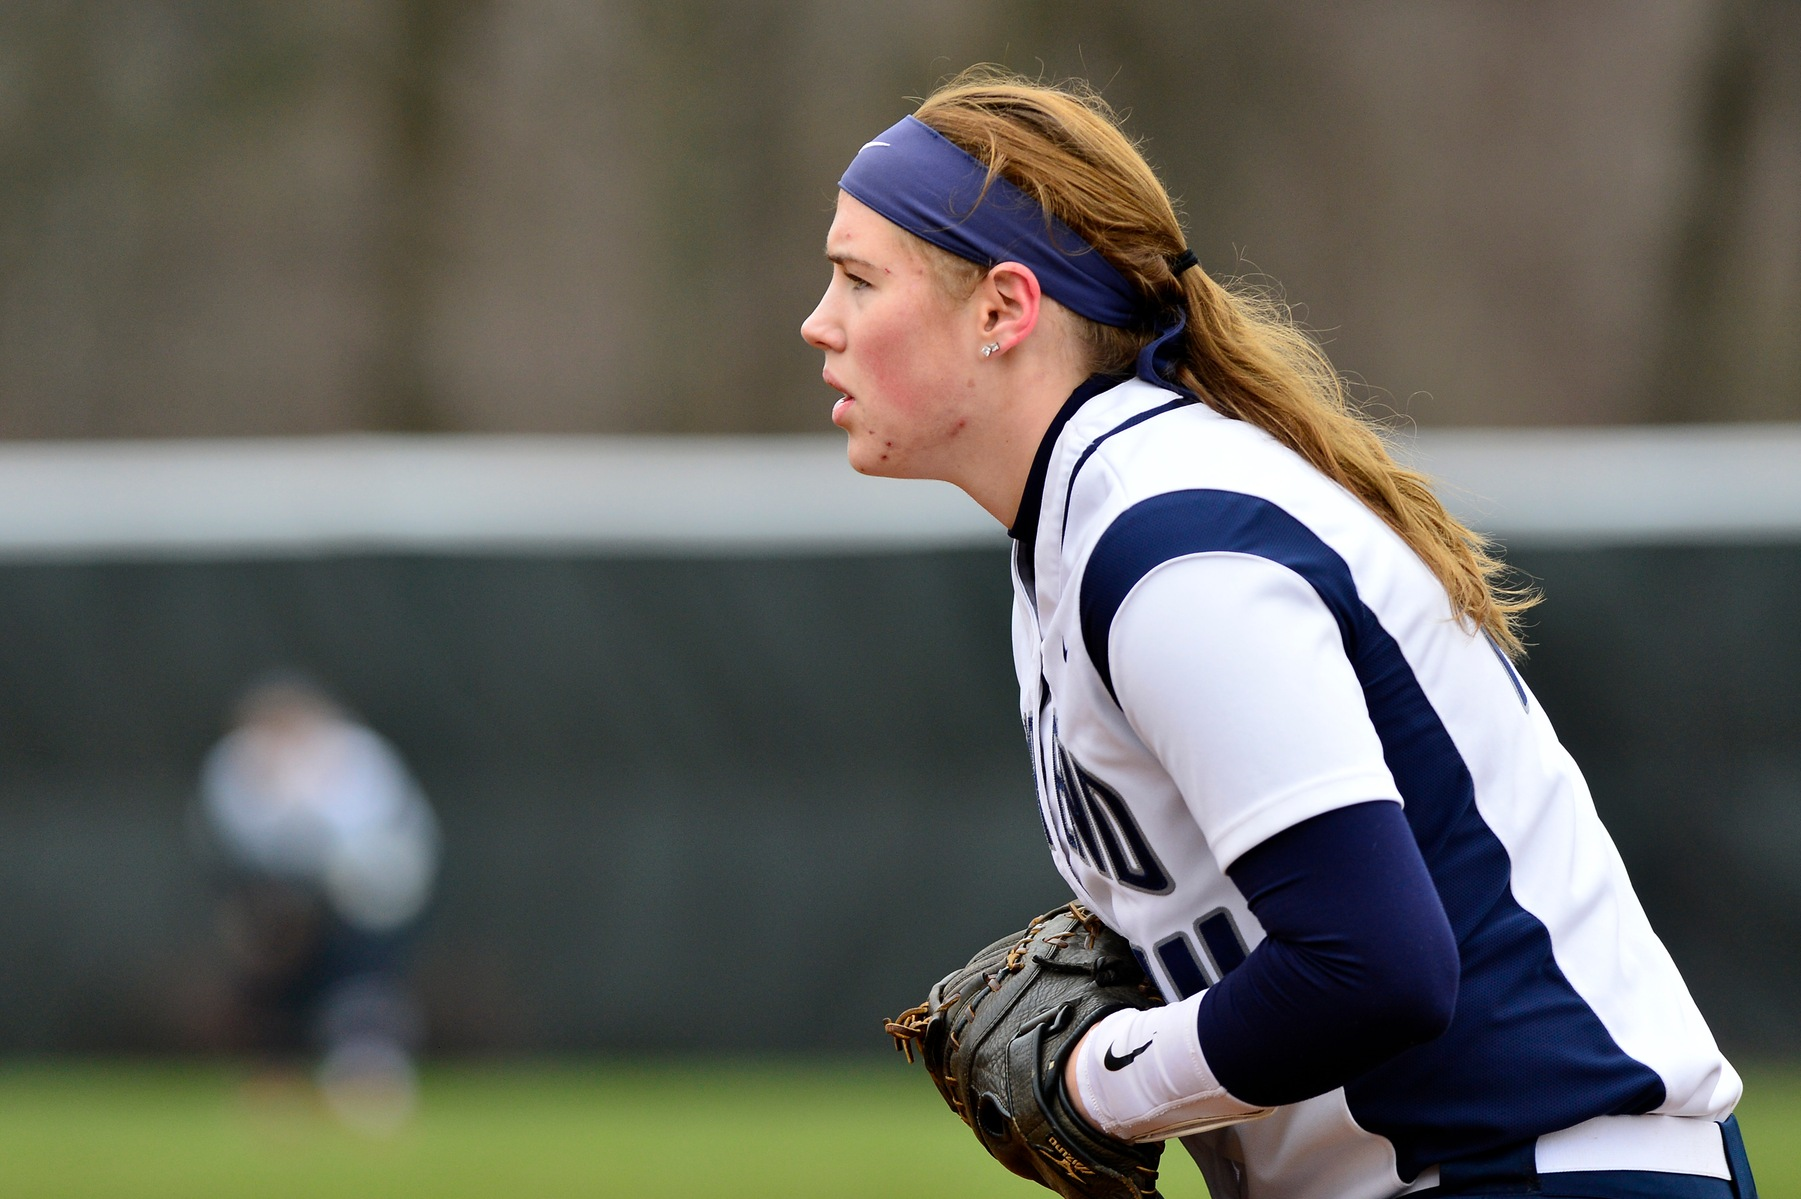 Kargol Smacks Three-Run Homer to Lift Softball Past Alvernia in ECAC Tournament